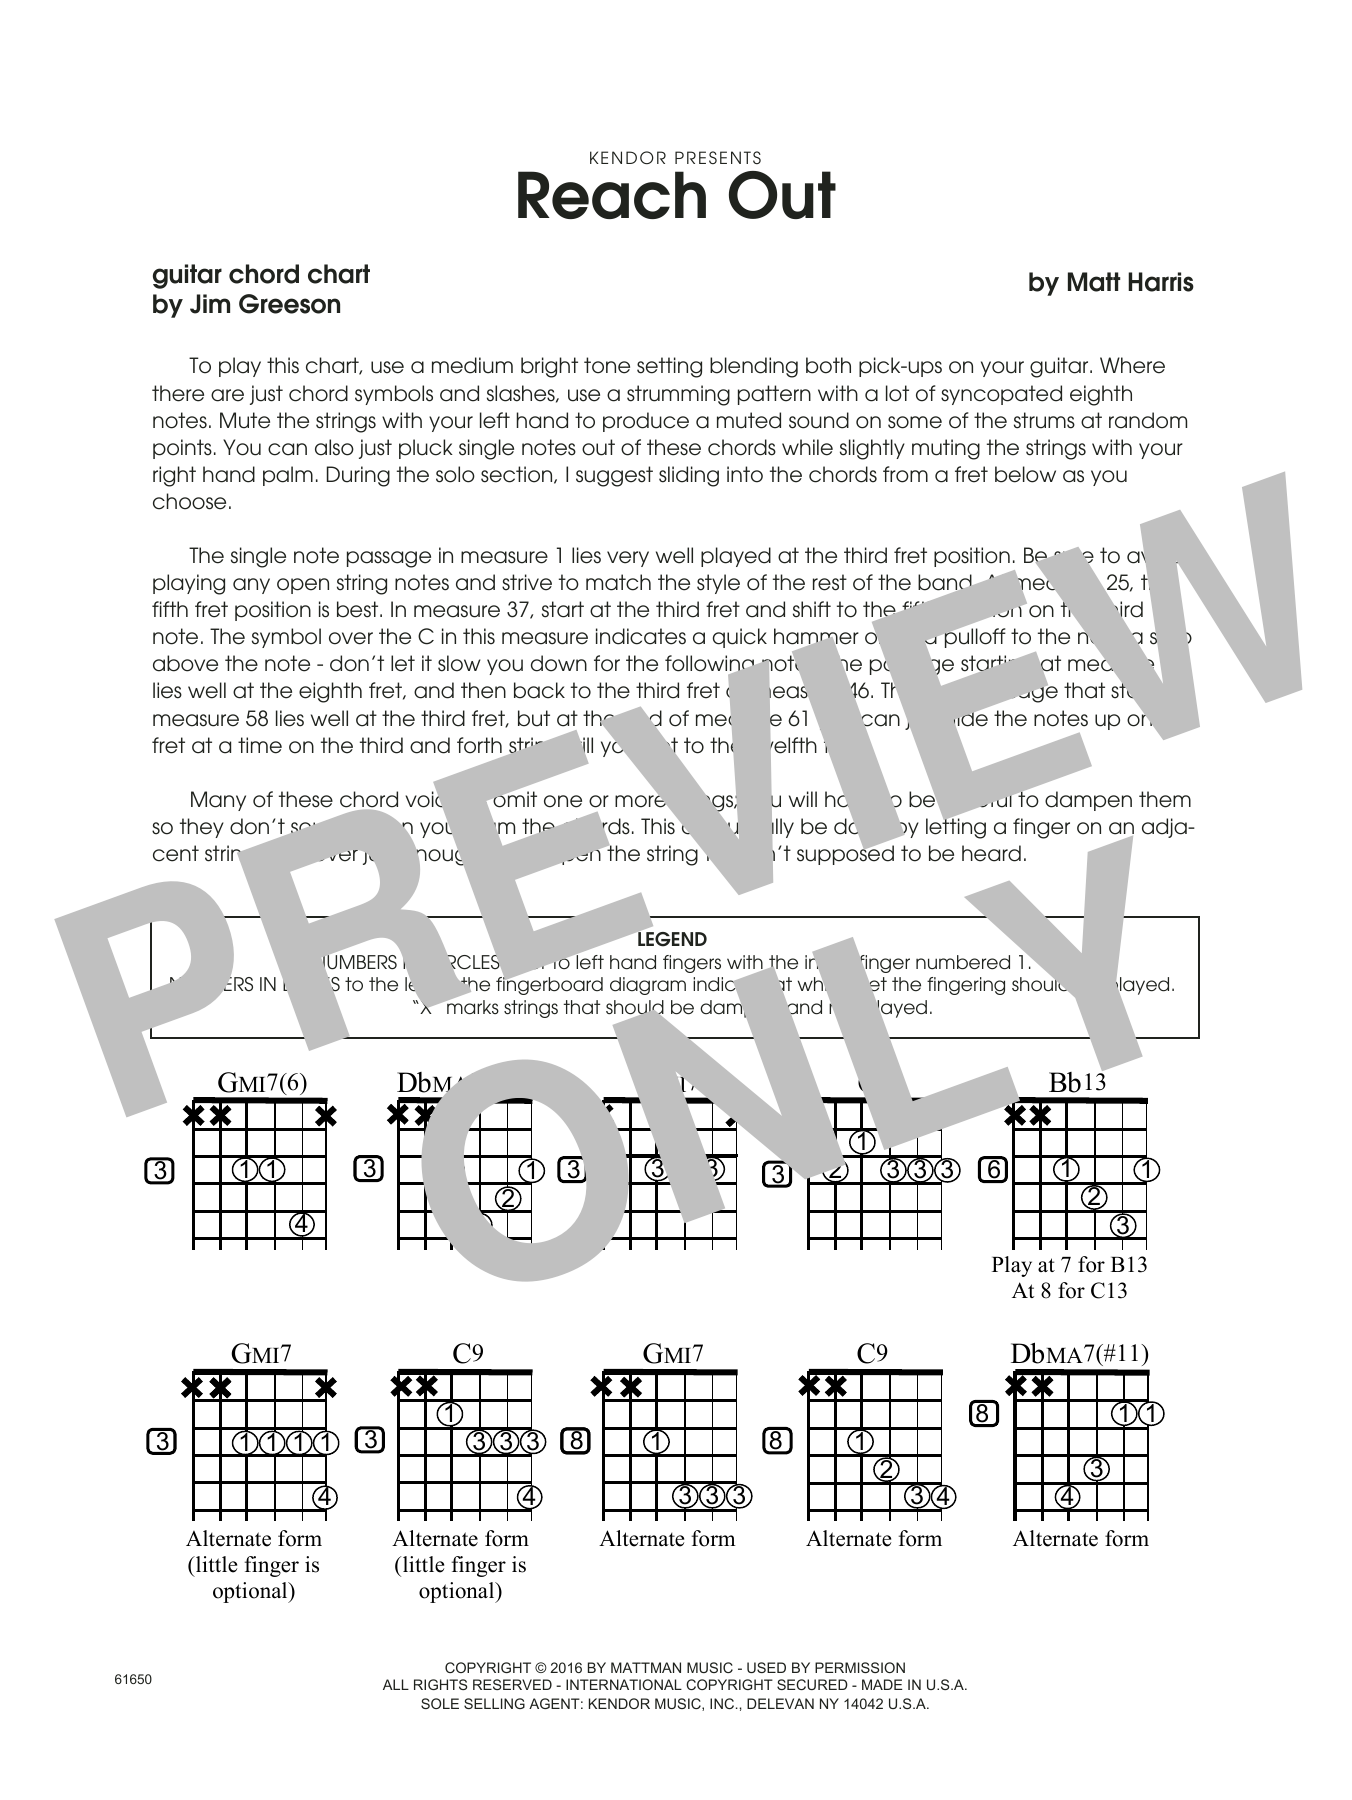 Reach Out - Guitar Chord Chart Sheet Music